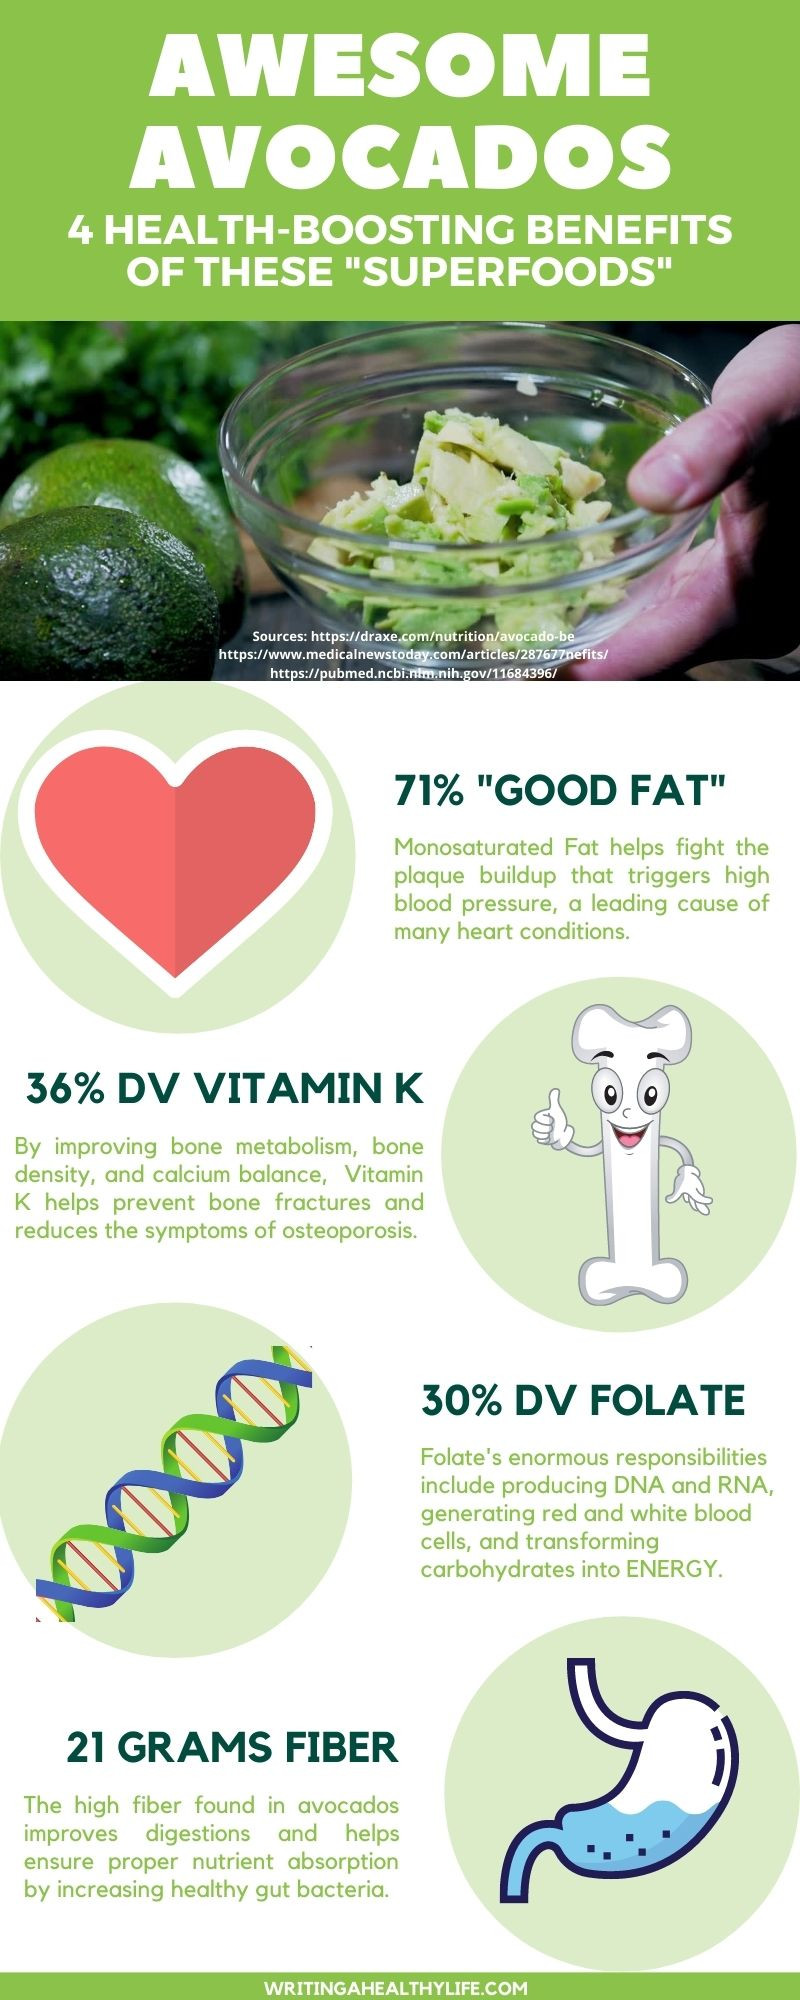 "Awesome Avocados Infographic: 4 Health-Boosting Benefits of These ""Superfoods"" at Writingahealthylife.com"